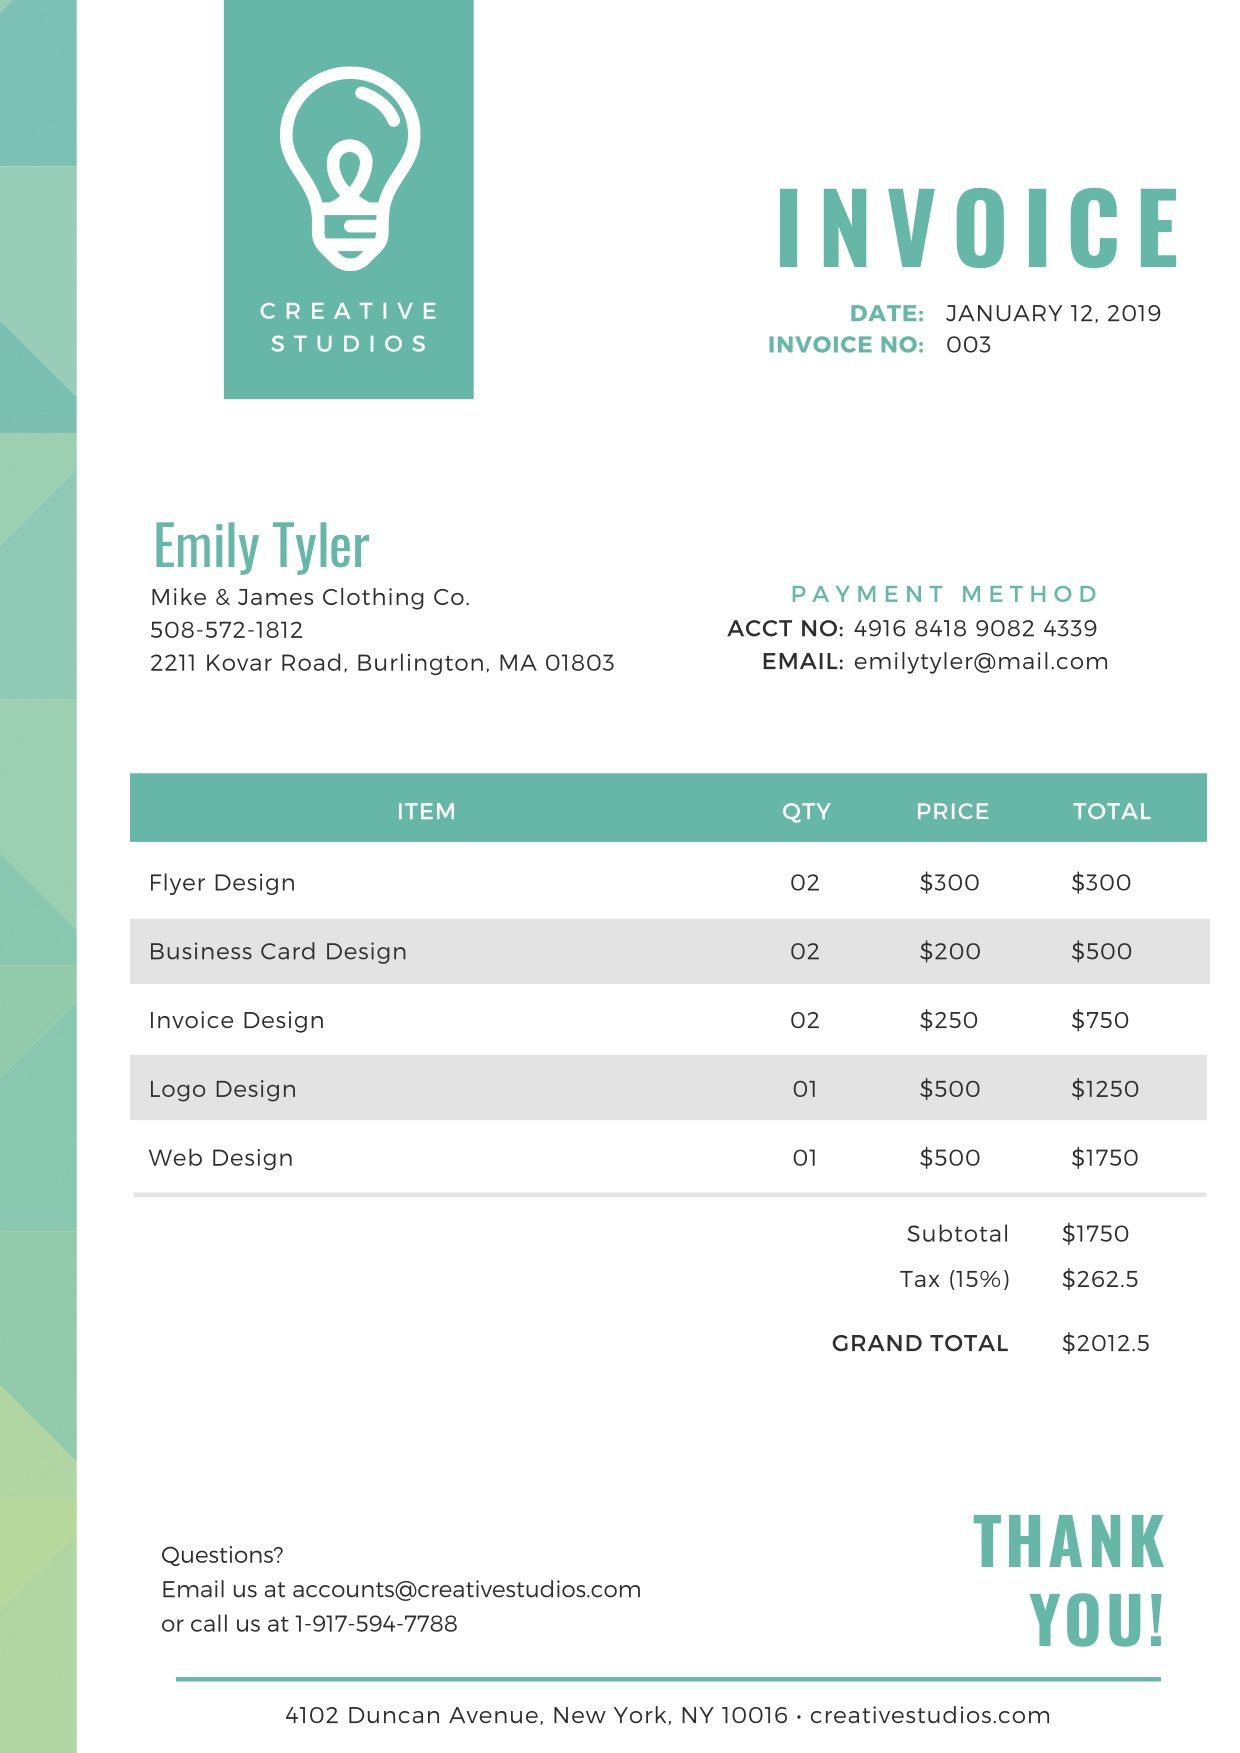 Beautiful Invoice Templates For Uk Sole Traders Ltds And More